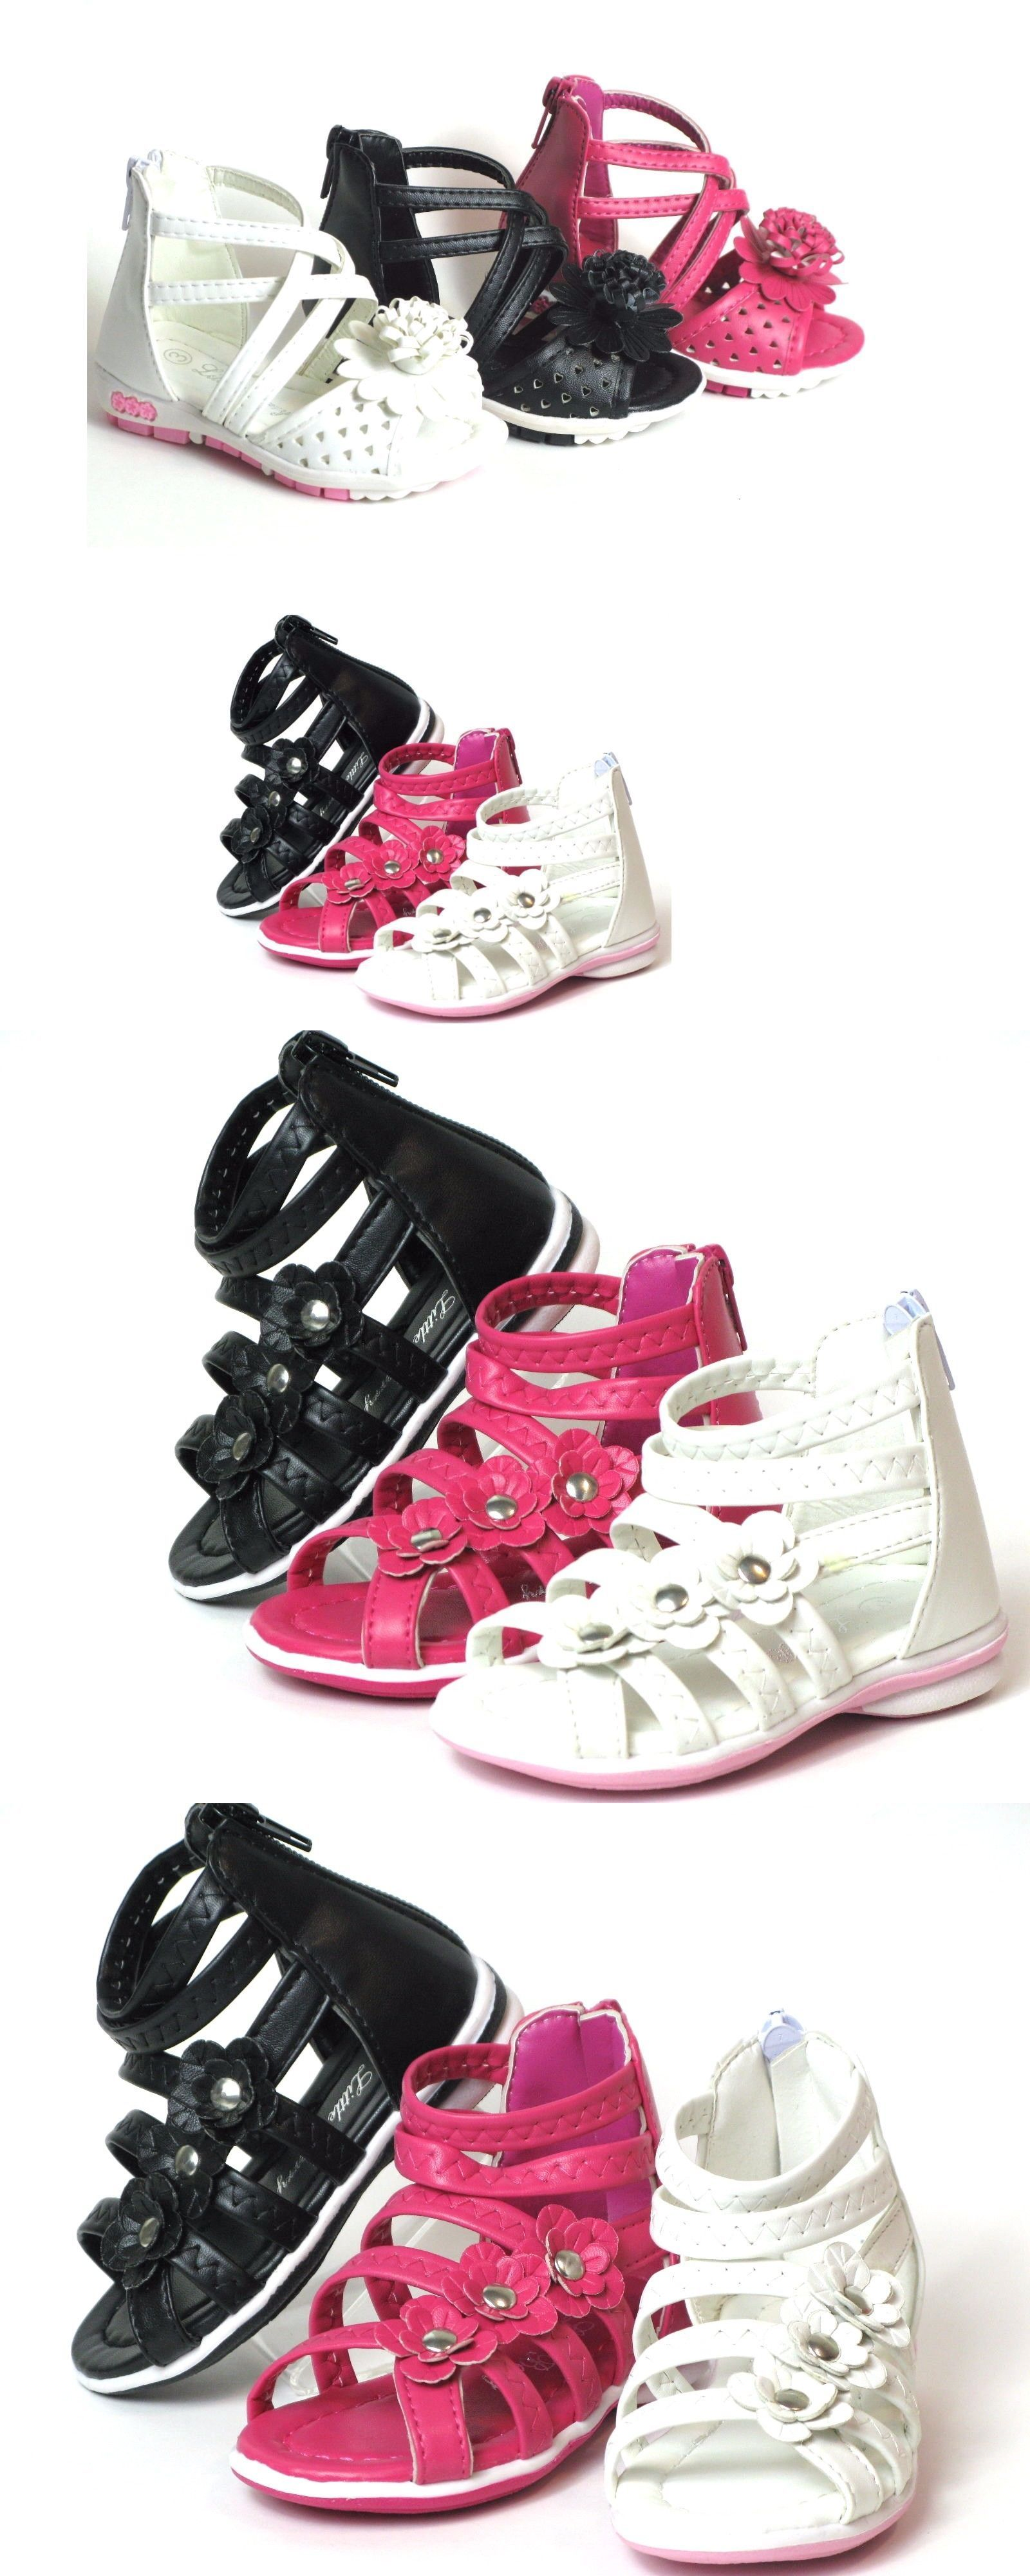 d196b31abf4 Baby Shoes 147285  Baby Toddler Girls Adorable Gladiator Sandals Shoes Size  4-9 Black Pink White -  BUY IT NOW ONLY   12.95 on  eBay  shoes  toddler   girls ...